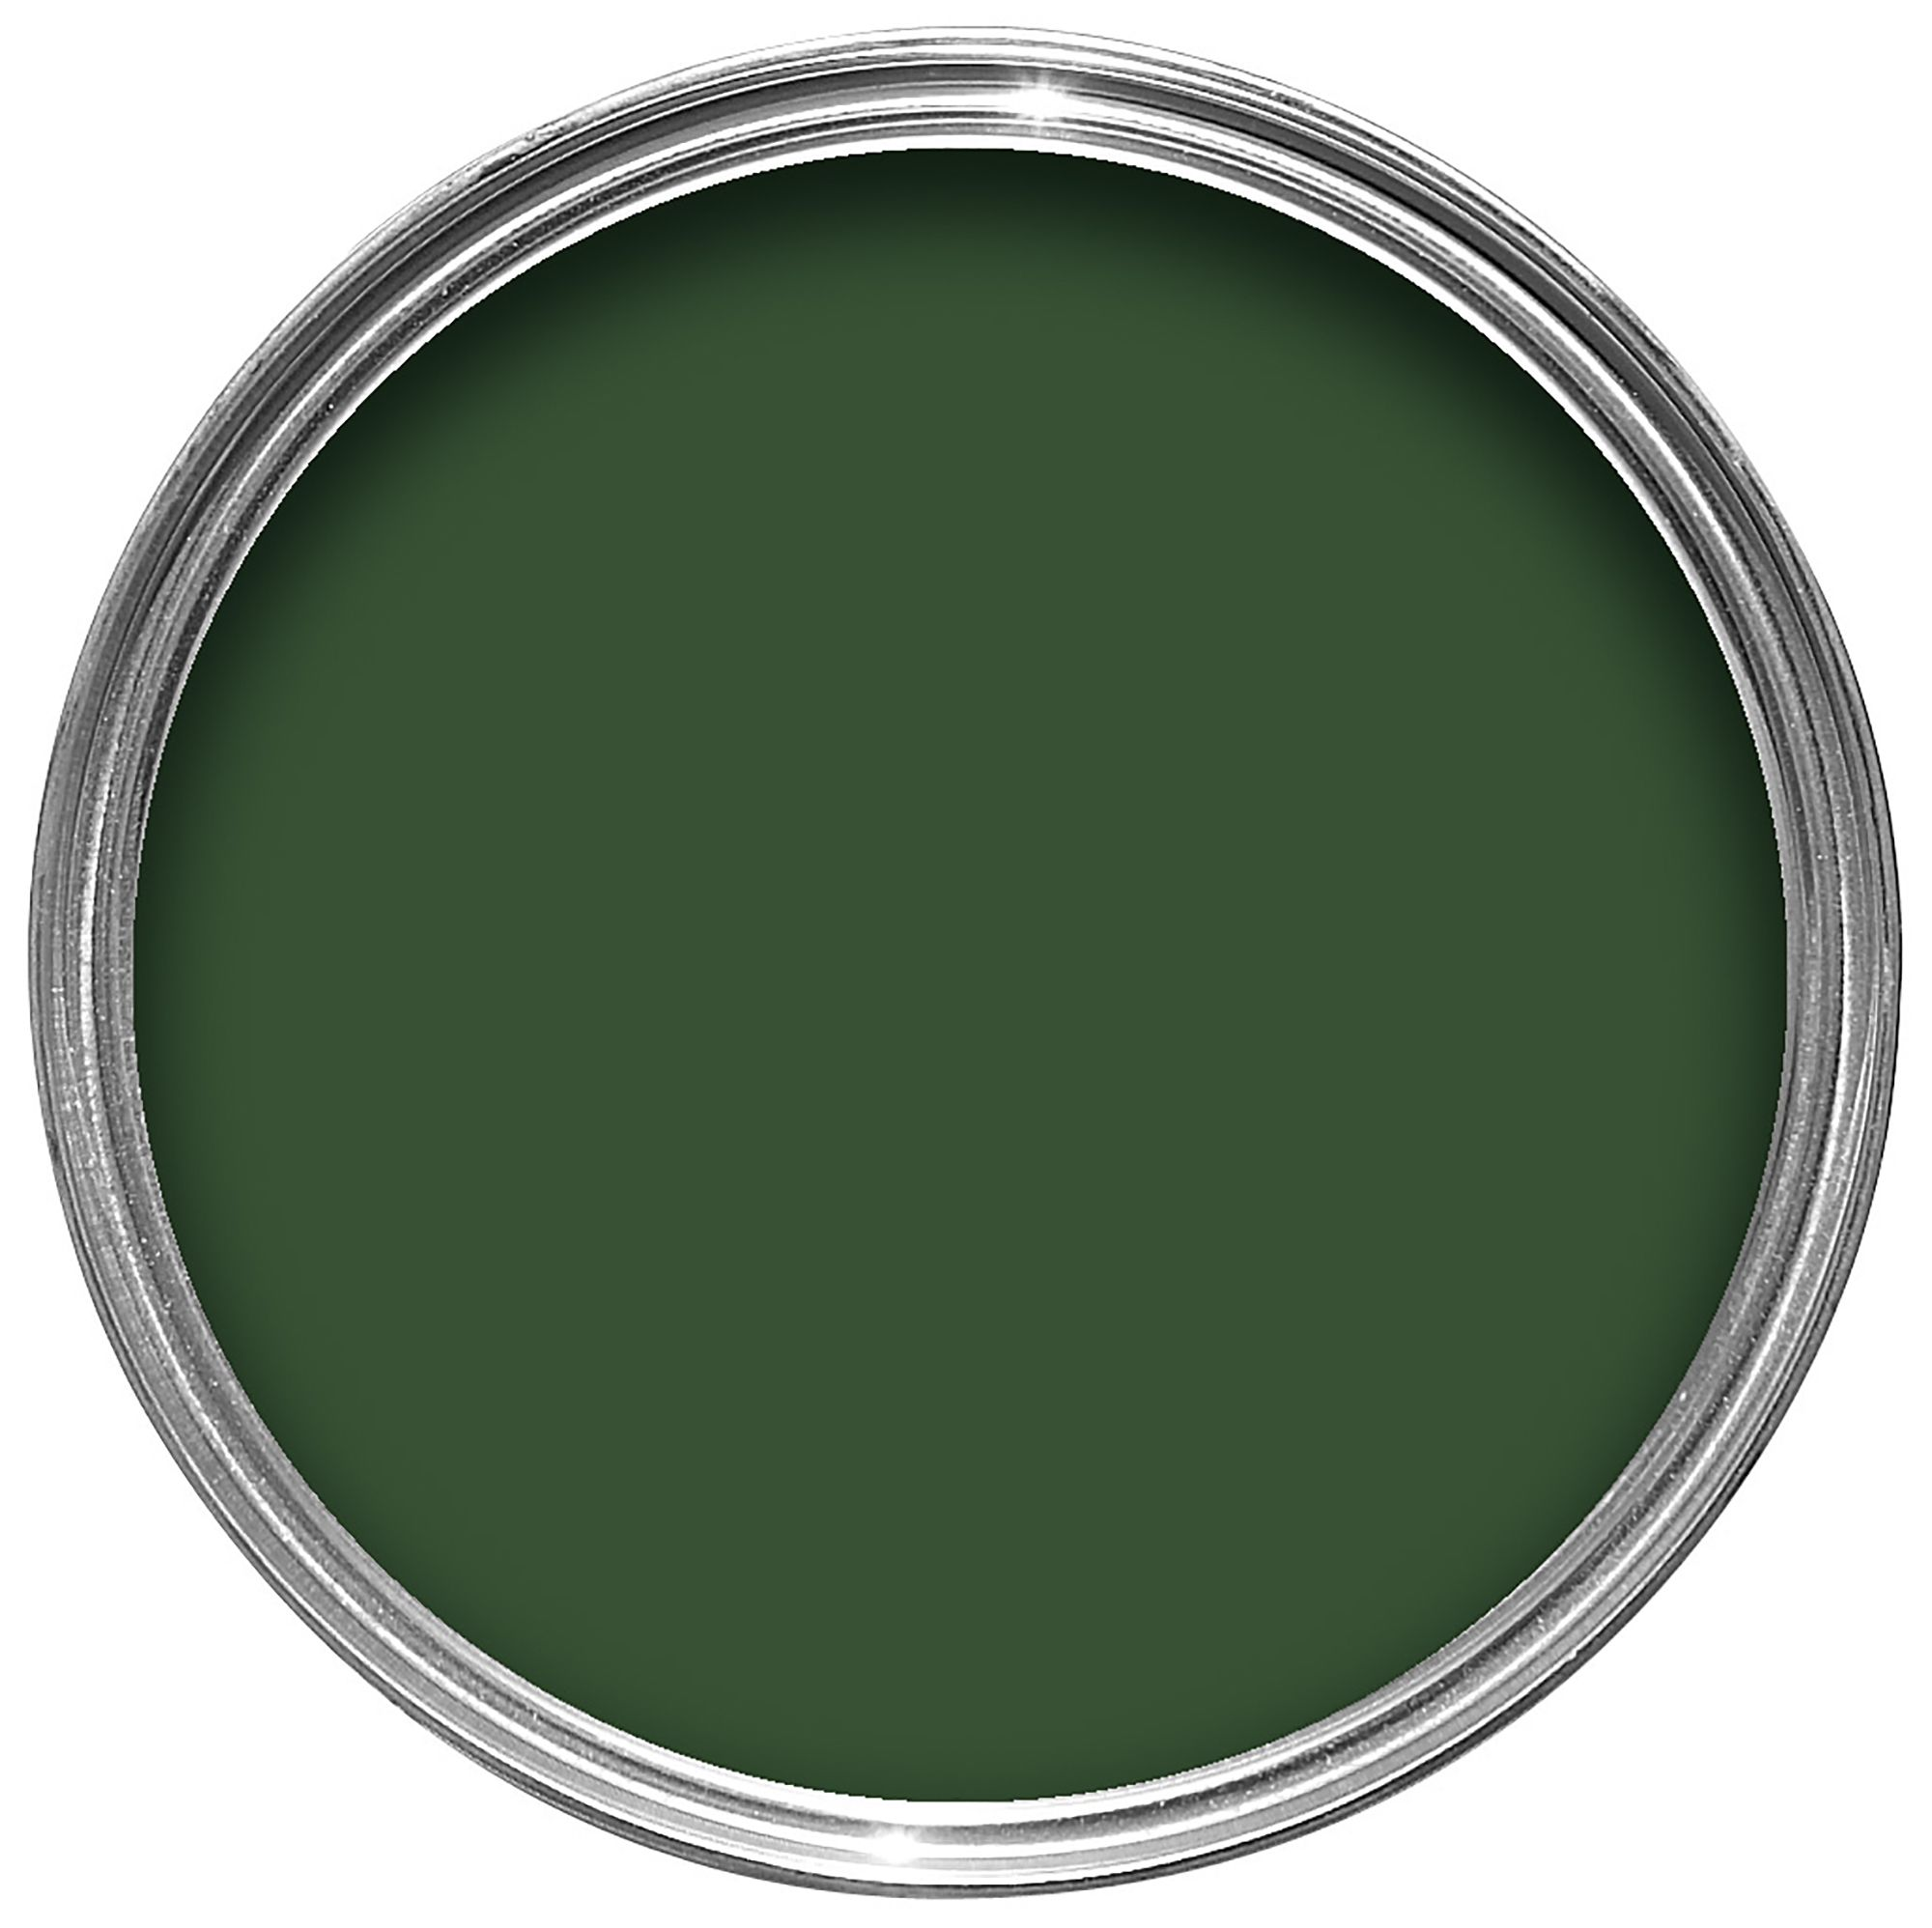 Colours Exterior Buckingham Green Gloss Wood Metal Paint 2 5l Departments Tradepoint